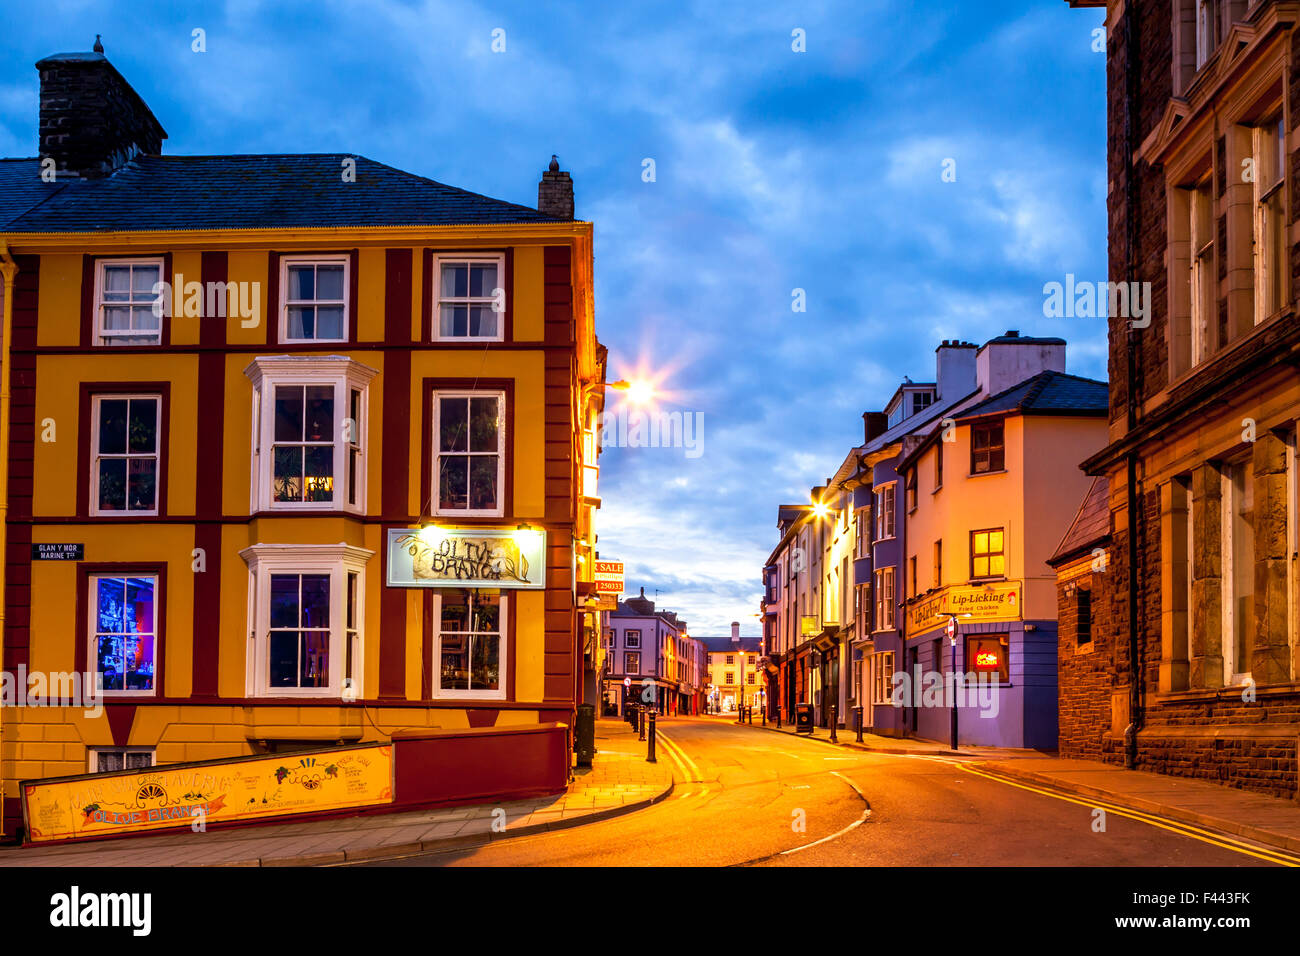 looking up pier street at dawn in Aberystwyth Wales UK - Stock Image